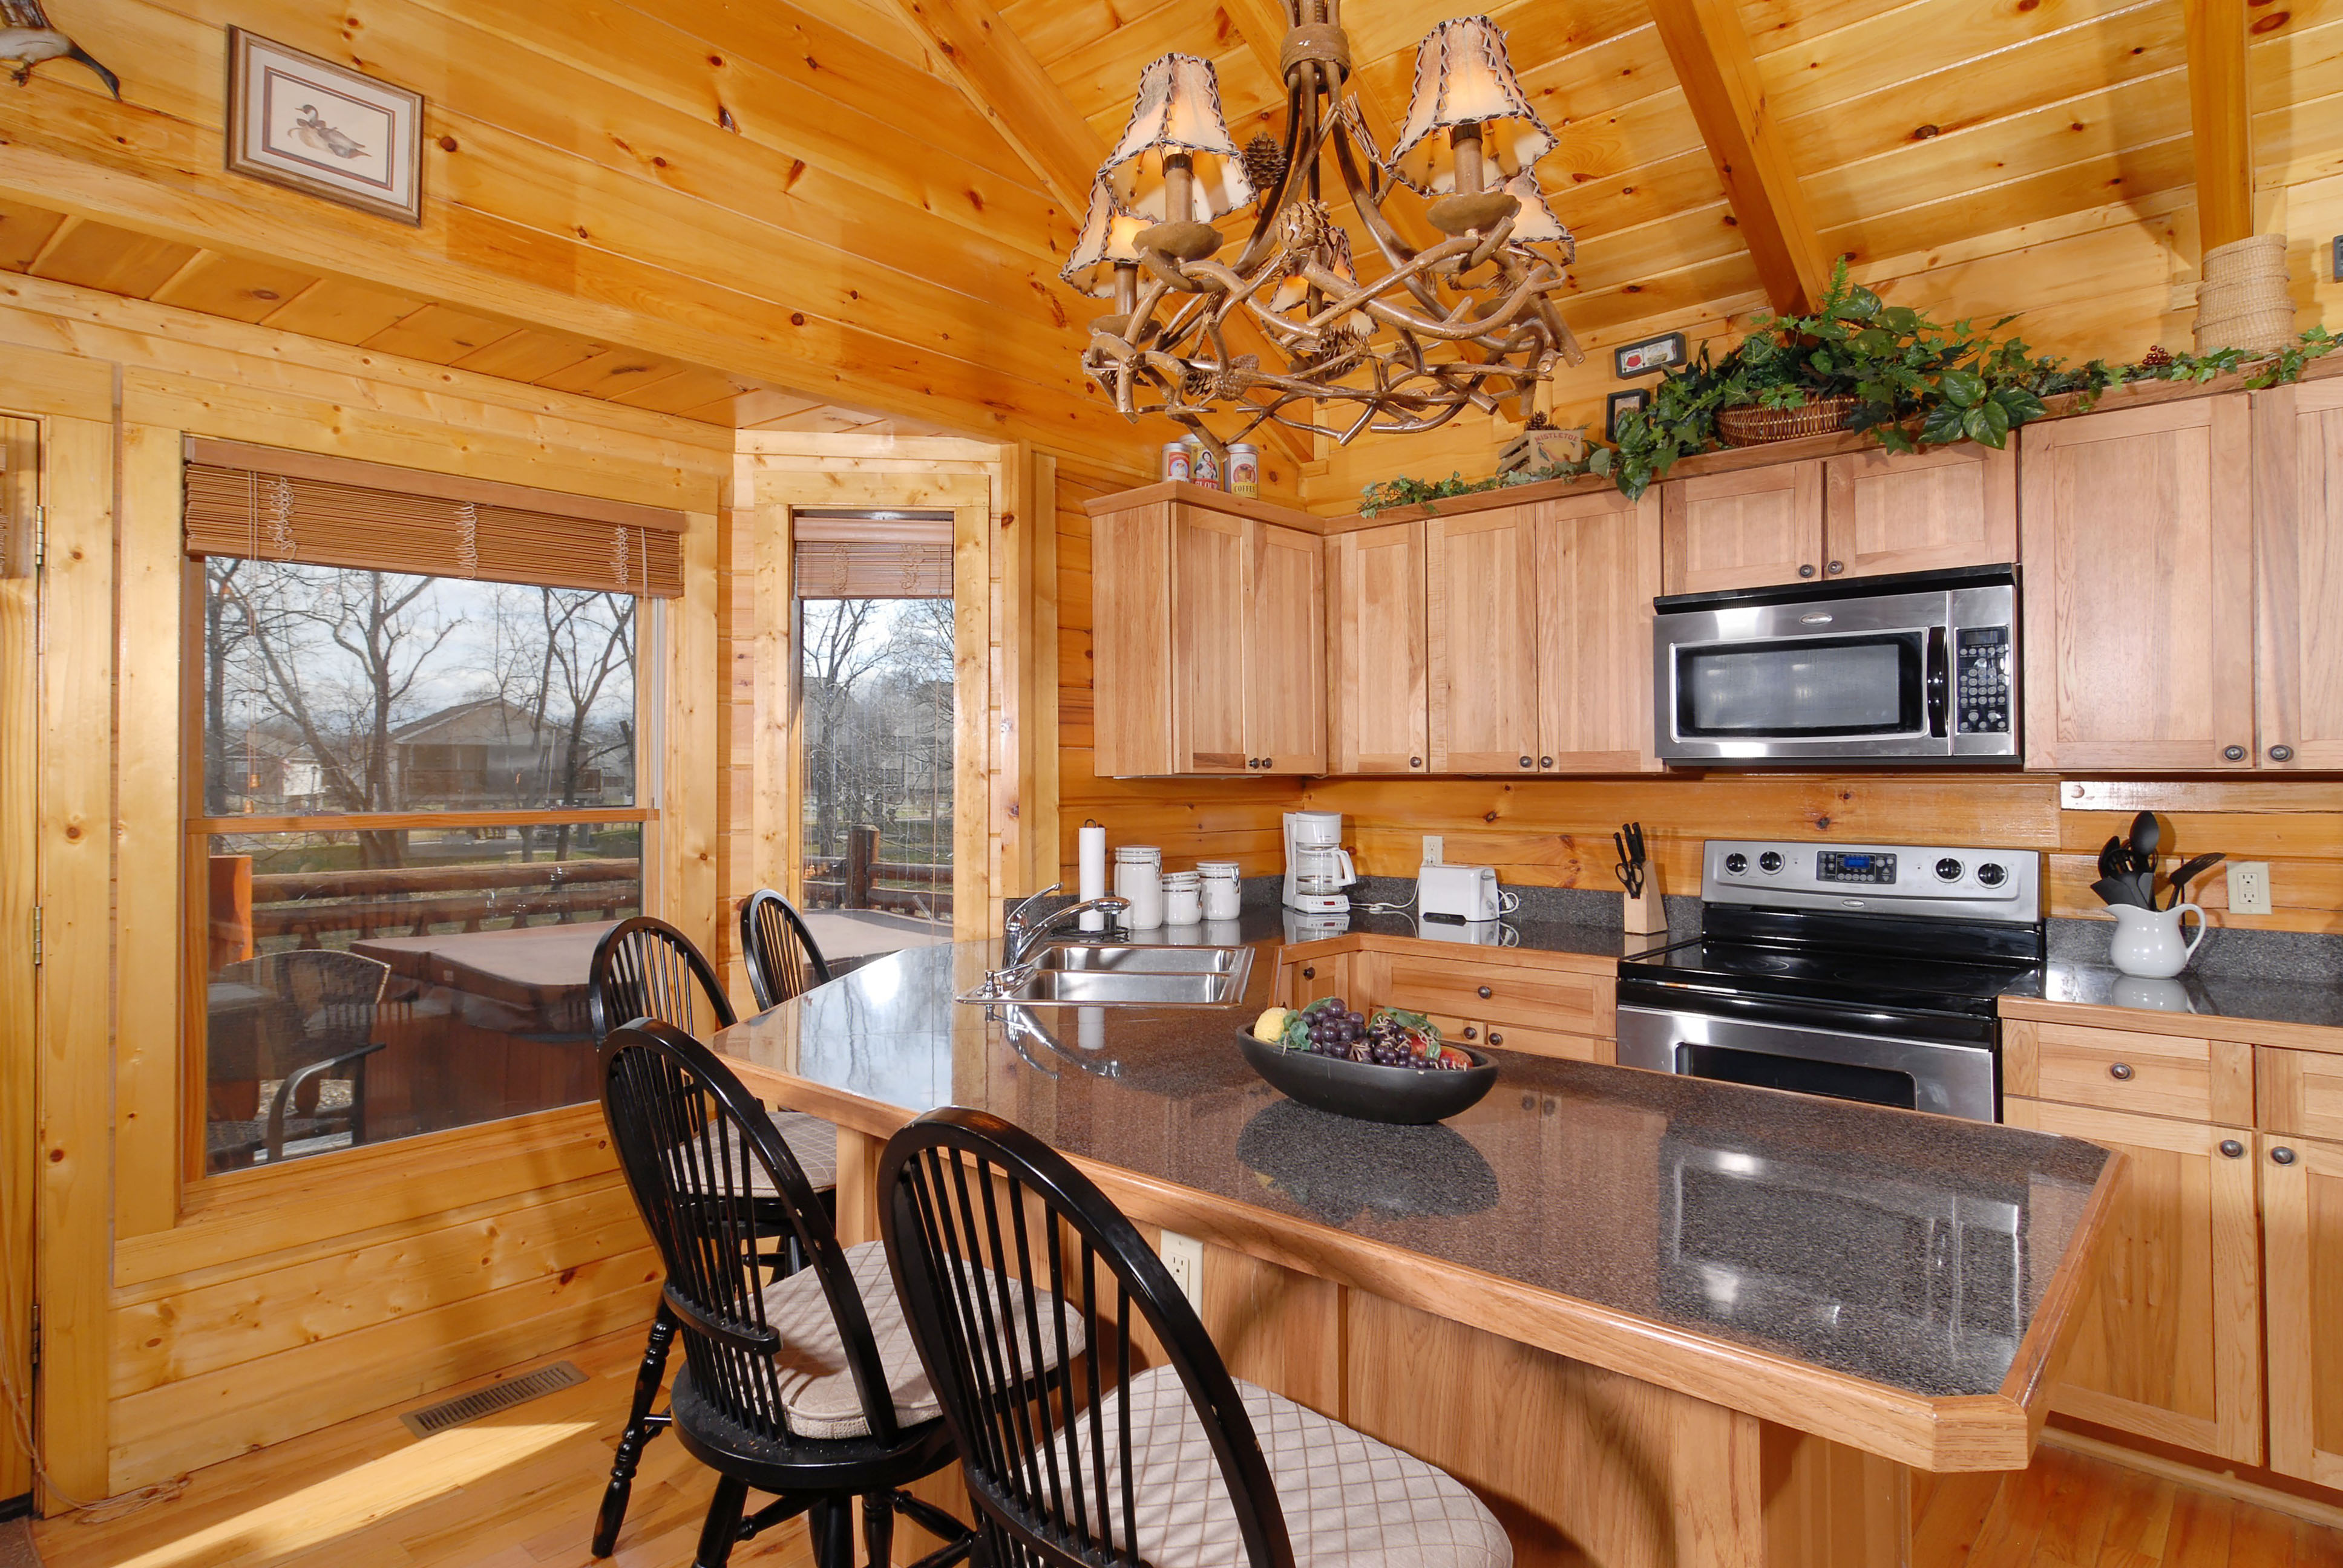 Pigeon Forge River Cabin that features a Deluxe Kitchen area overlooking the Little Pigeon River Convenient to Hwy 441